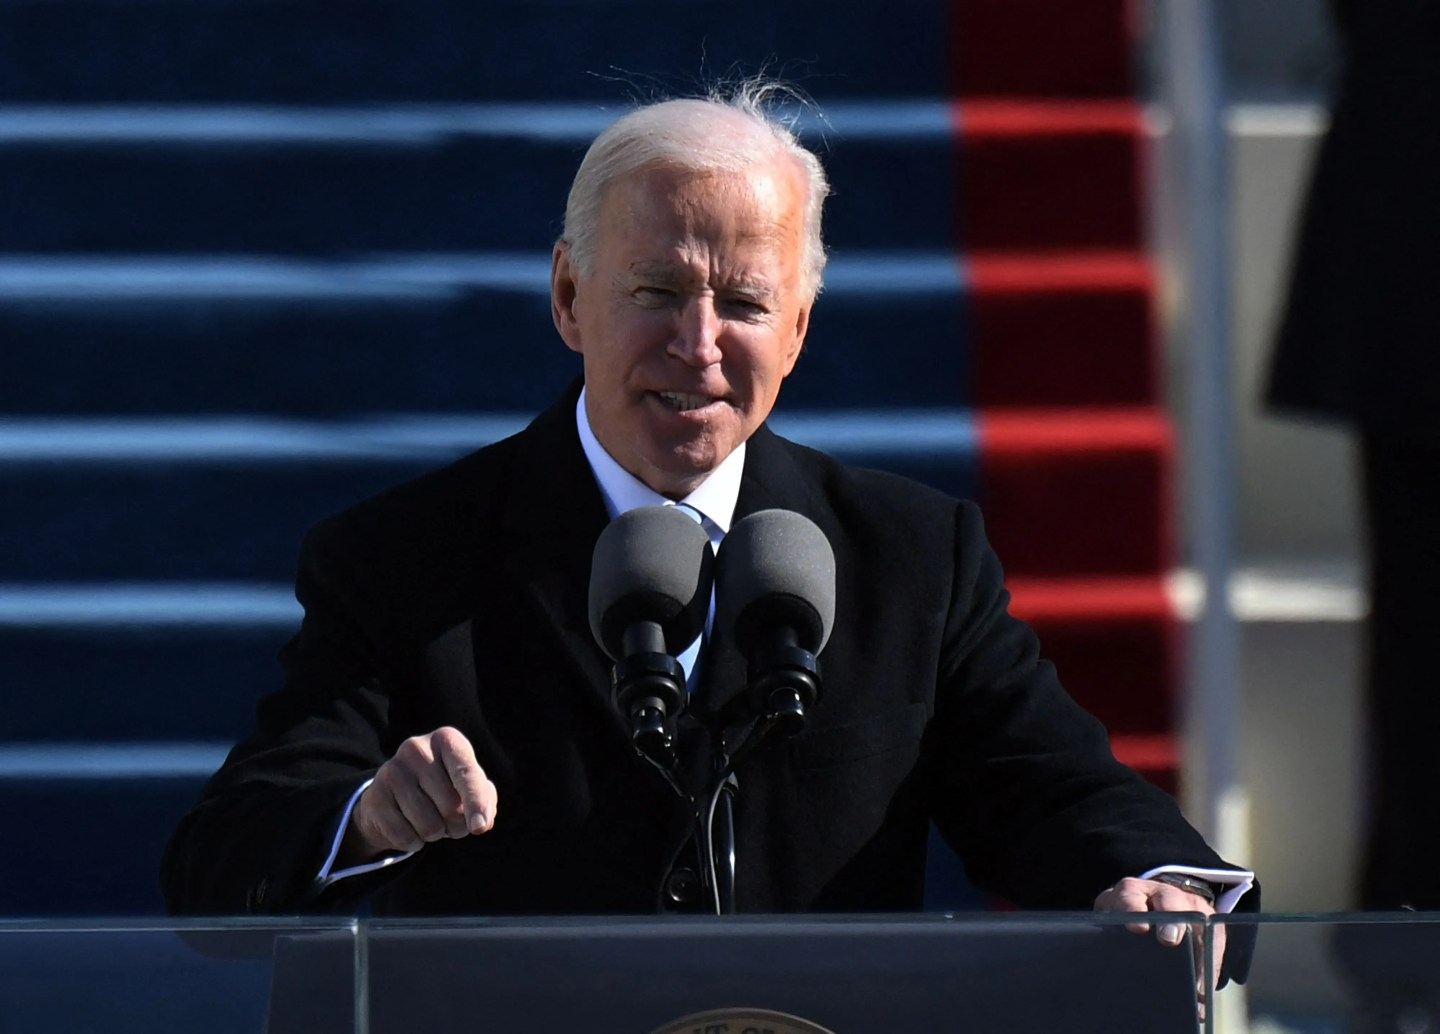 President Joe Biden delivers his inauguration speech on January 20, 2021, at the US Capitol in Washington, DC. -